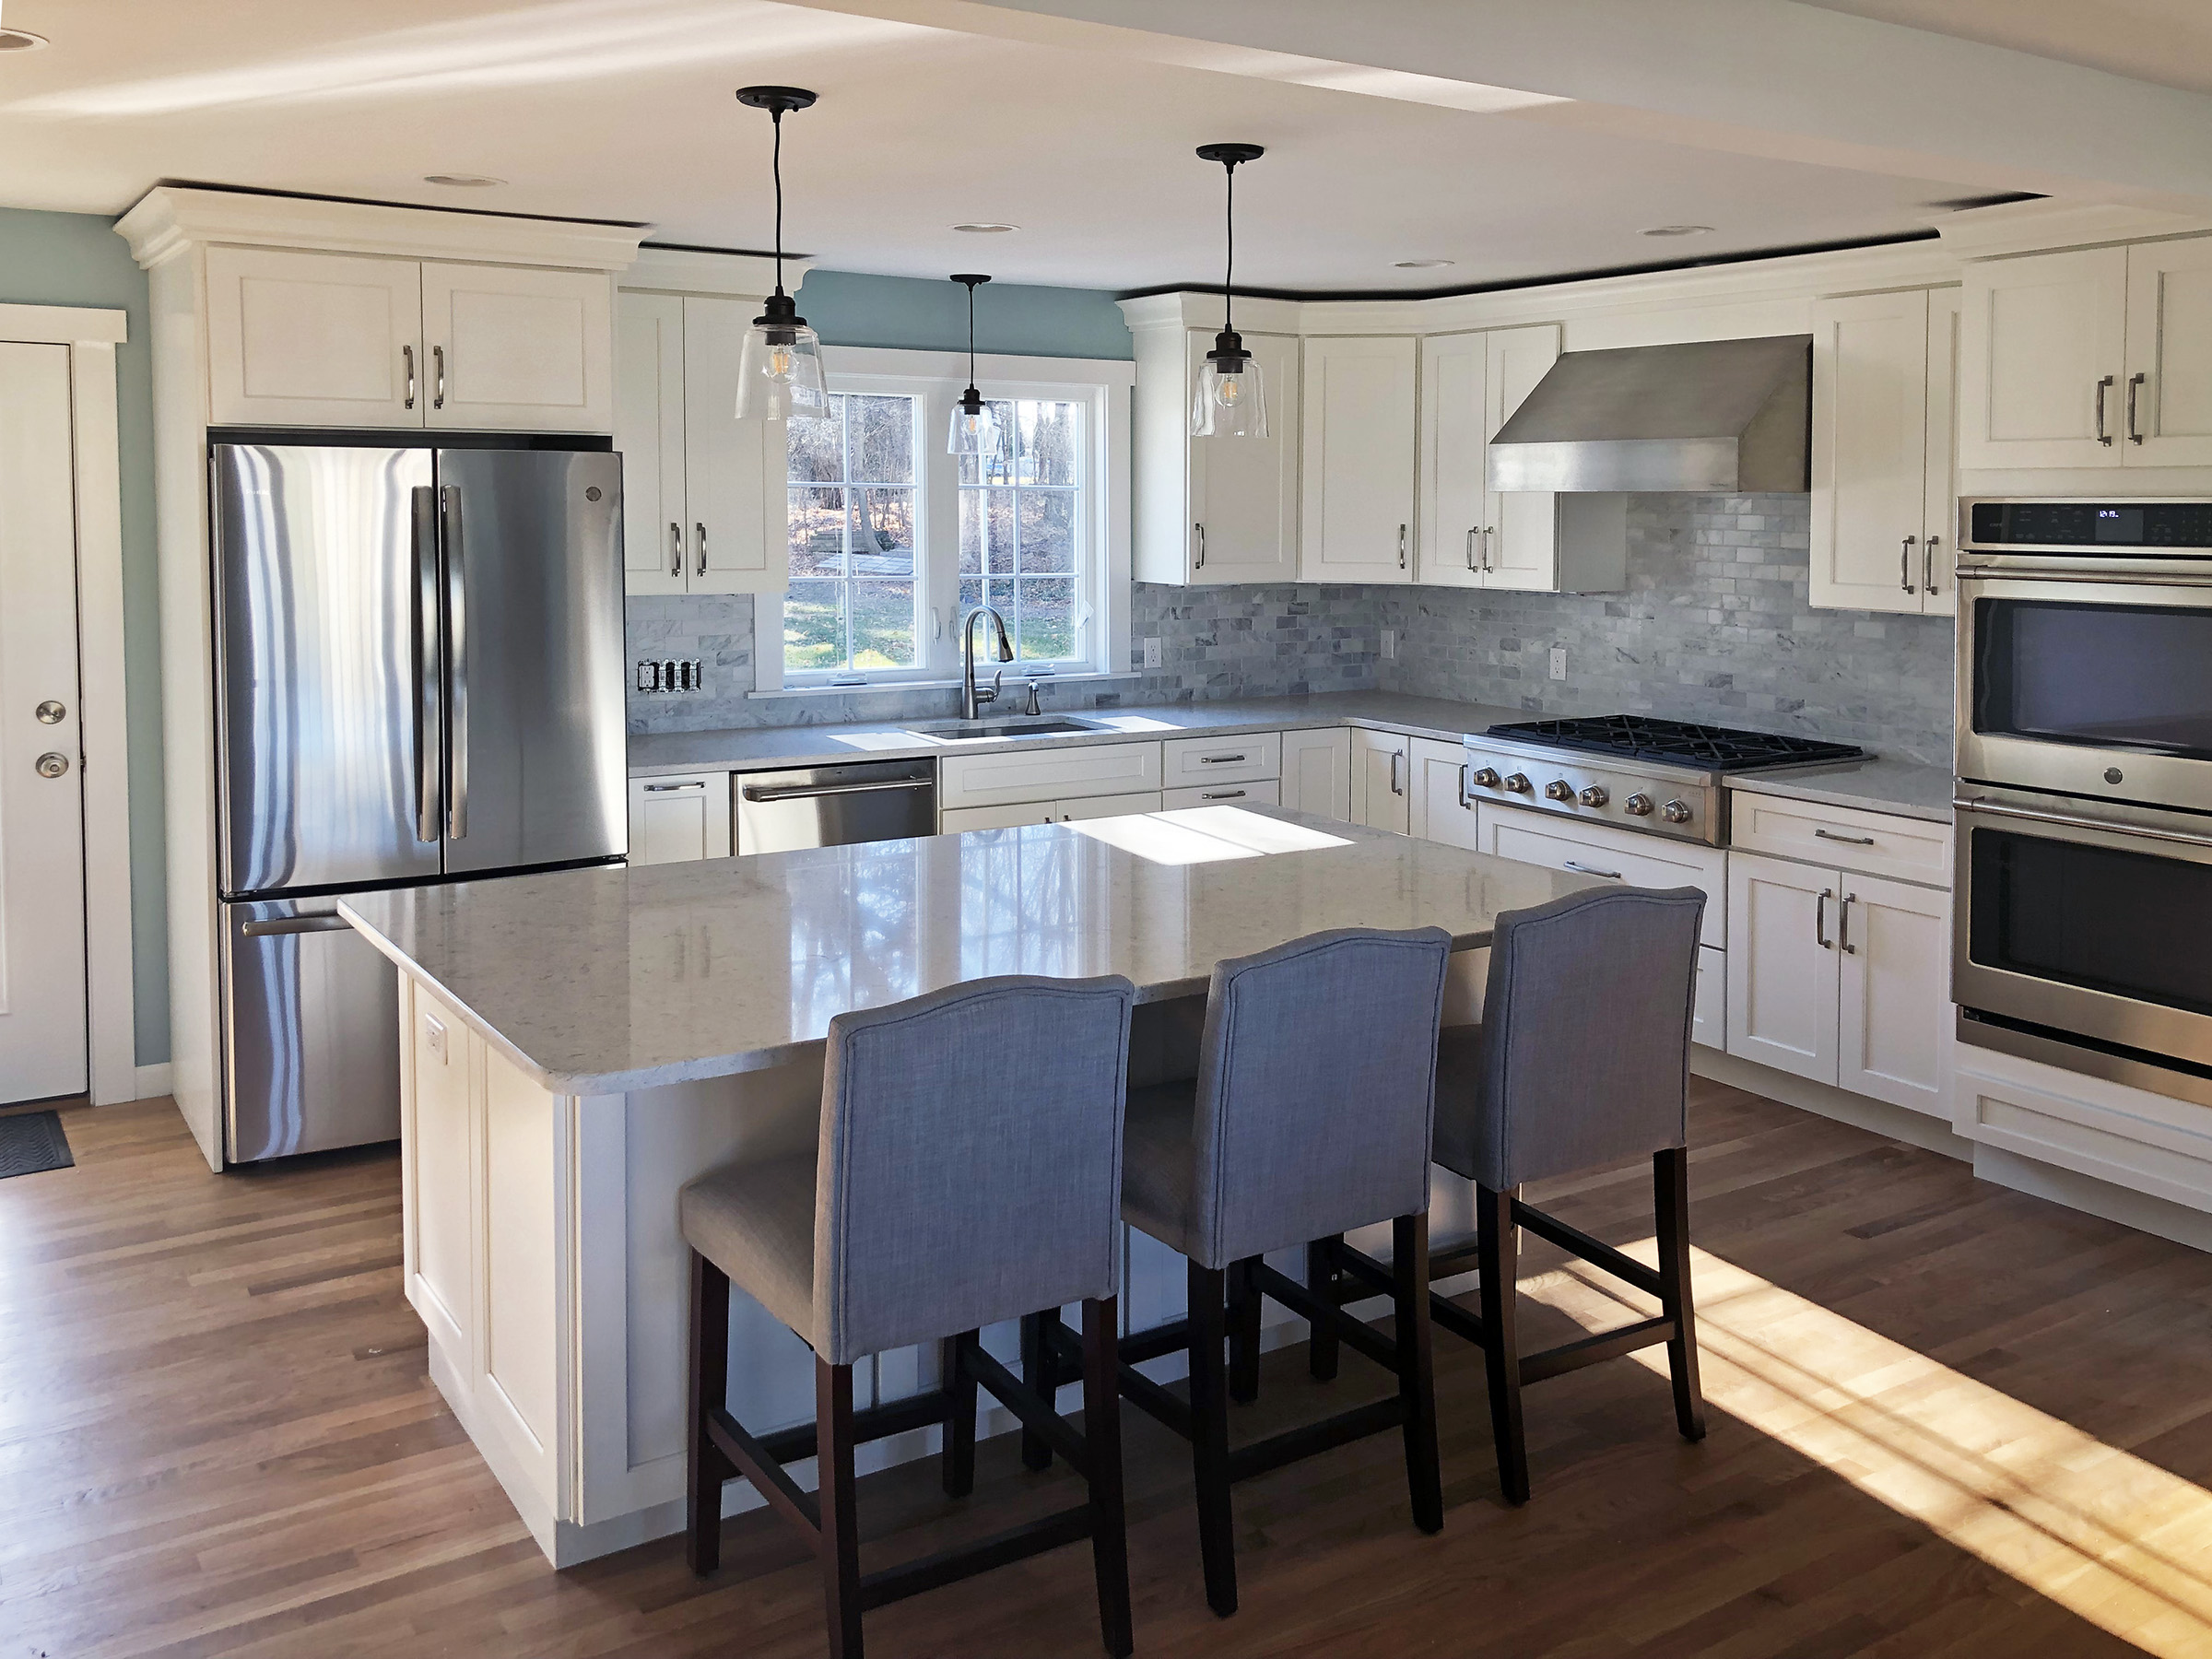 Residential Woodcrafts, Inc build a Medallion kitchen in Suffield, CT